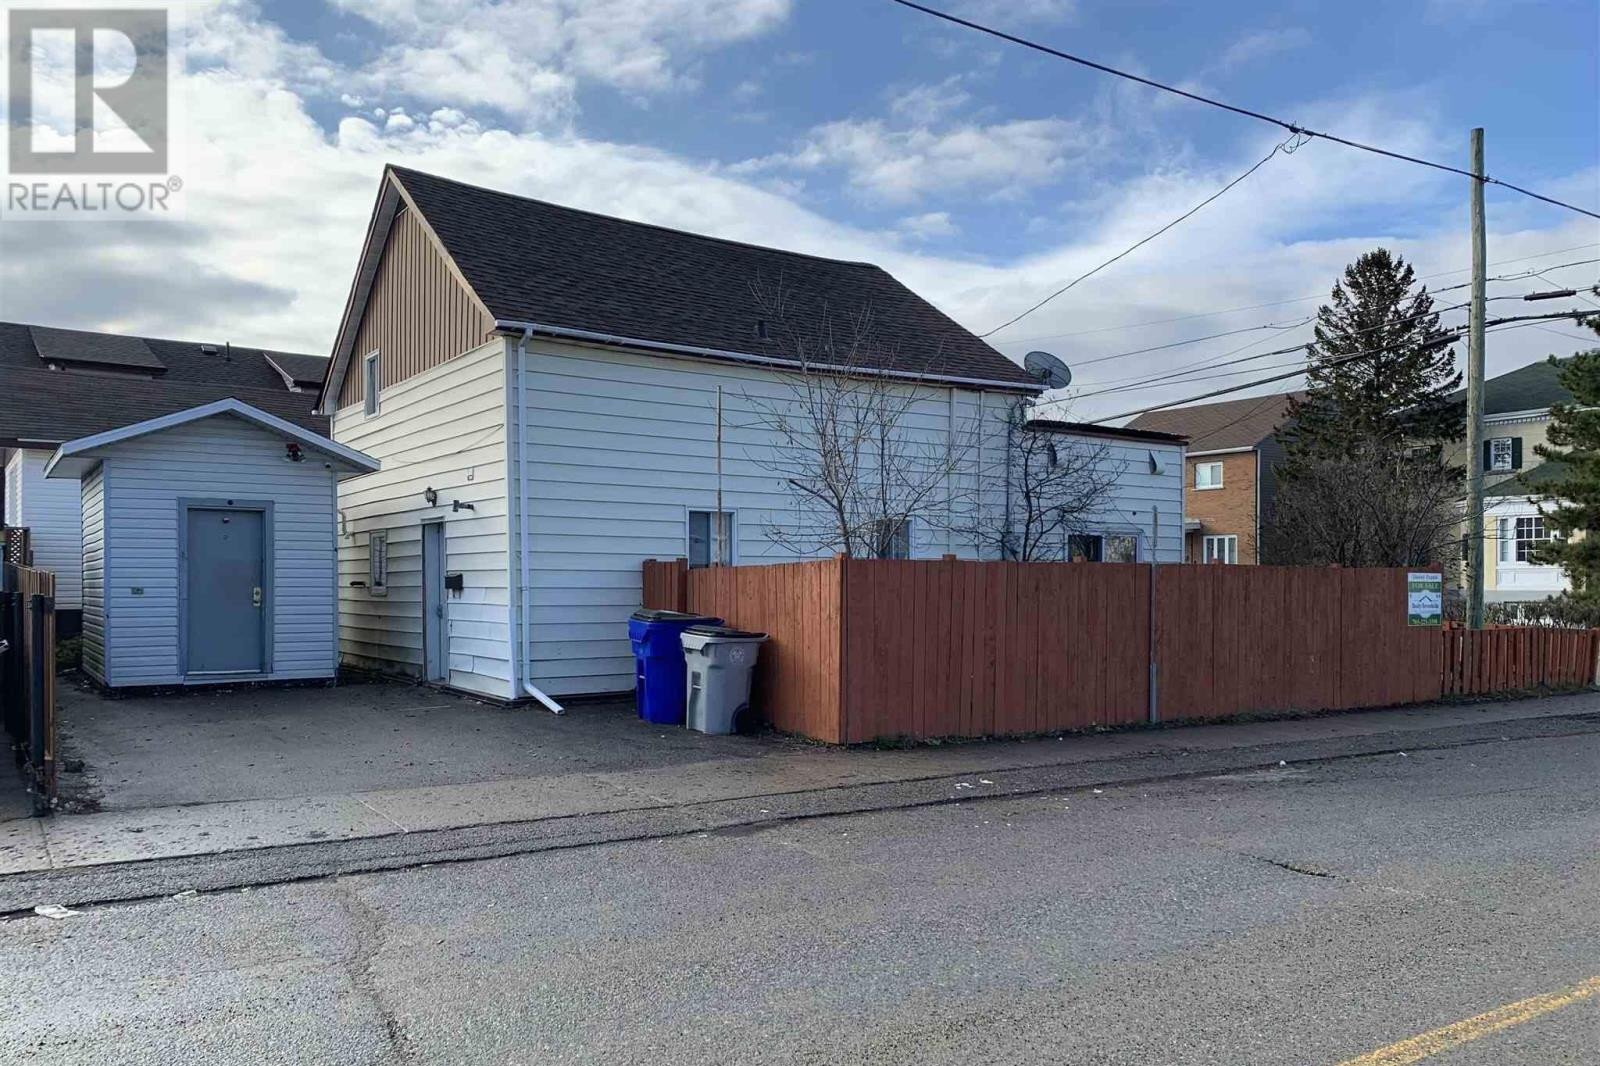 House for sale at 202 Birch St S Timmins Ontario - MLS: TM202224